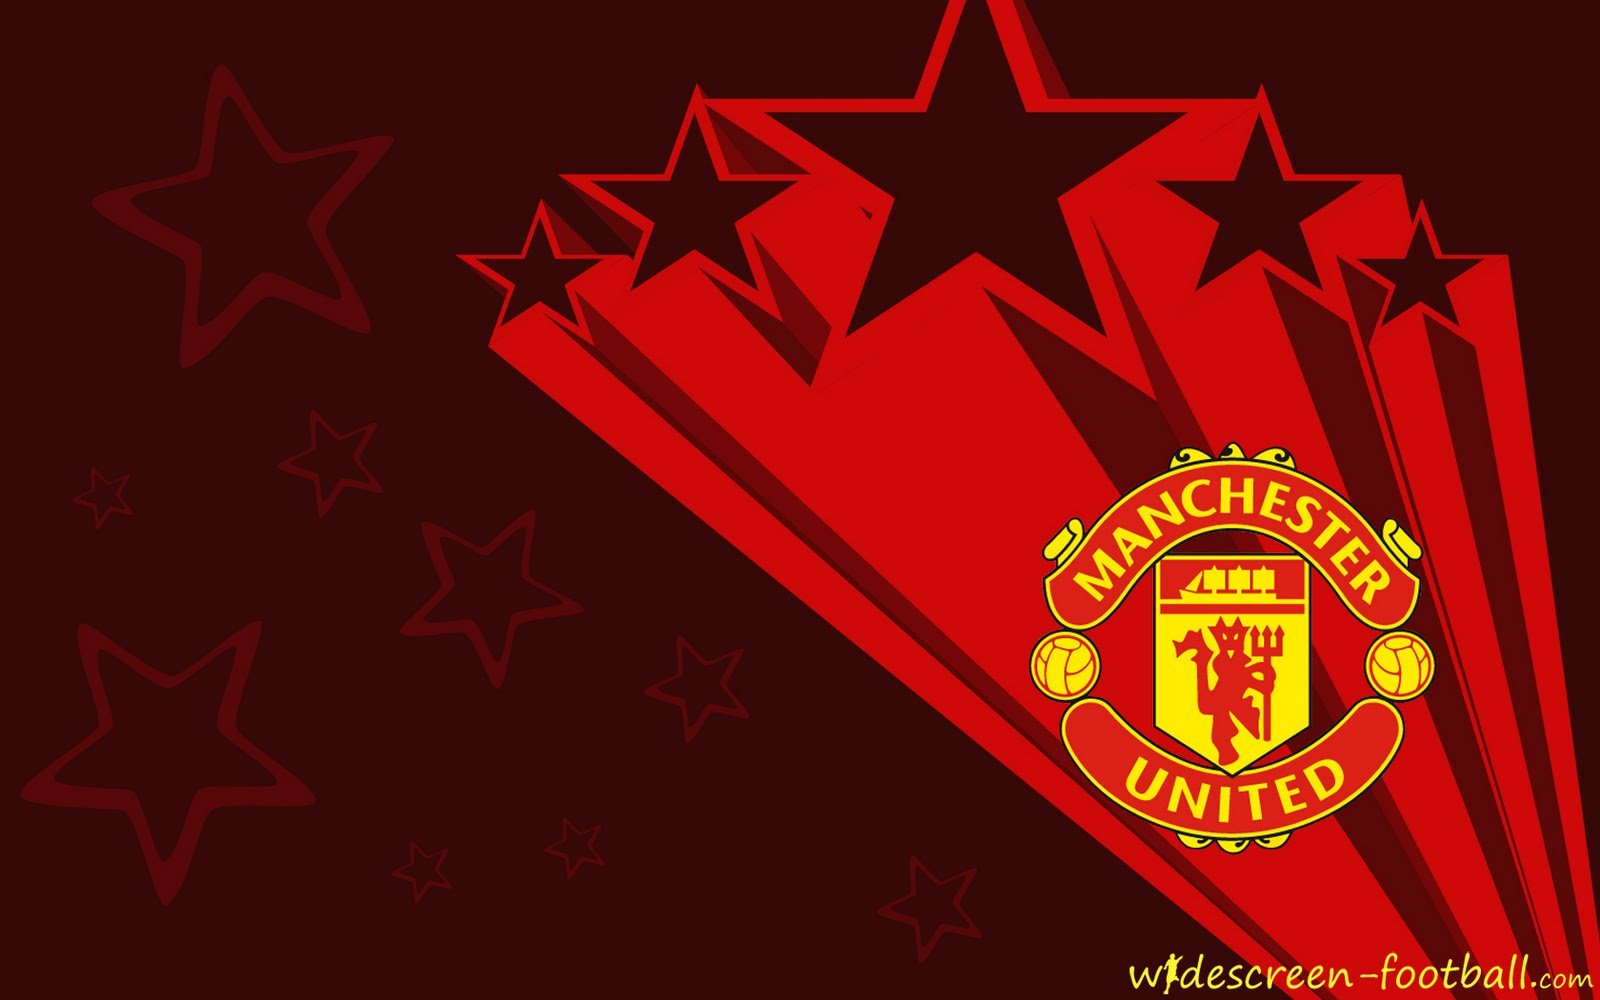 Manchester United Wallpapers HDImage to Wallpaper 1600x1000